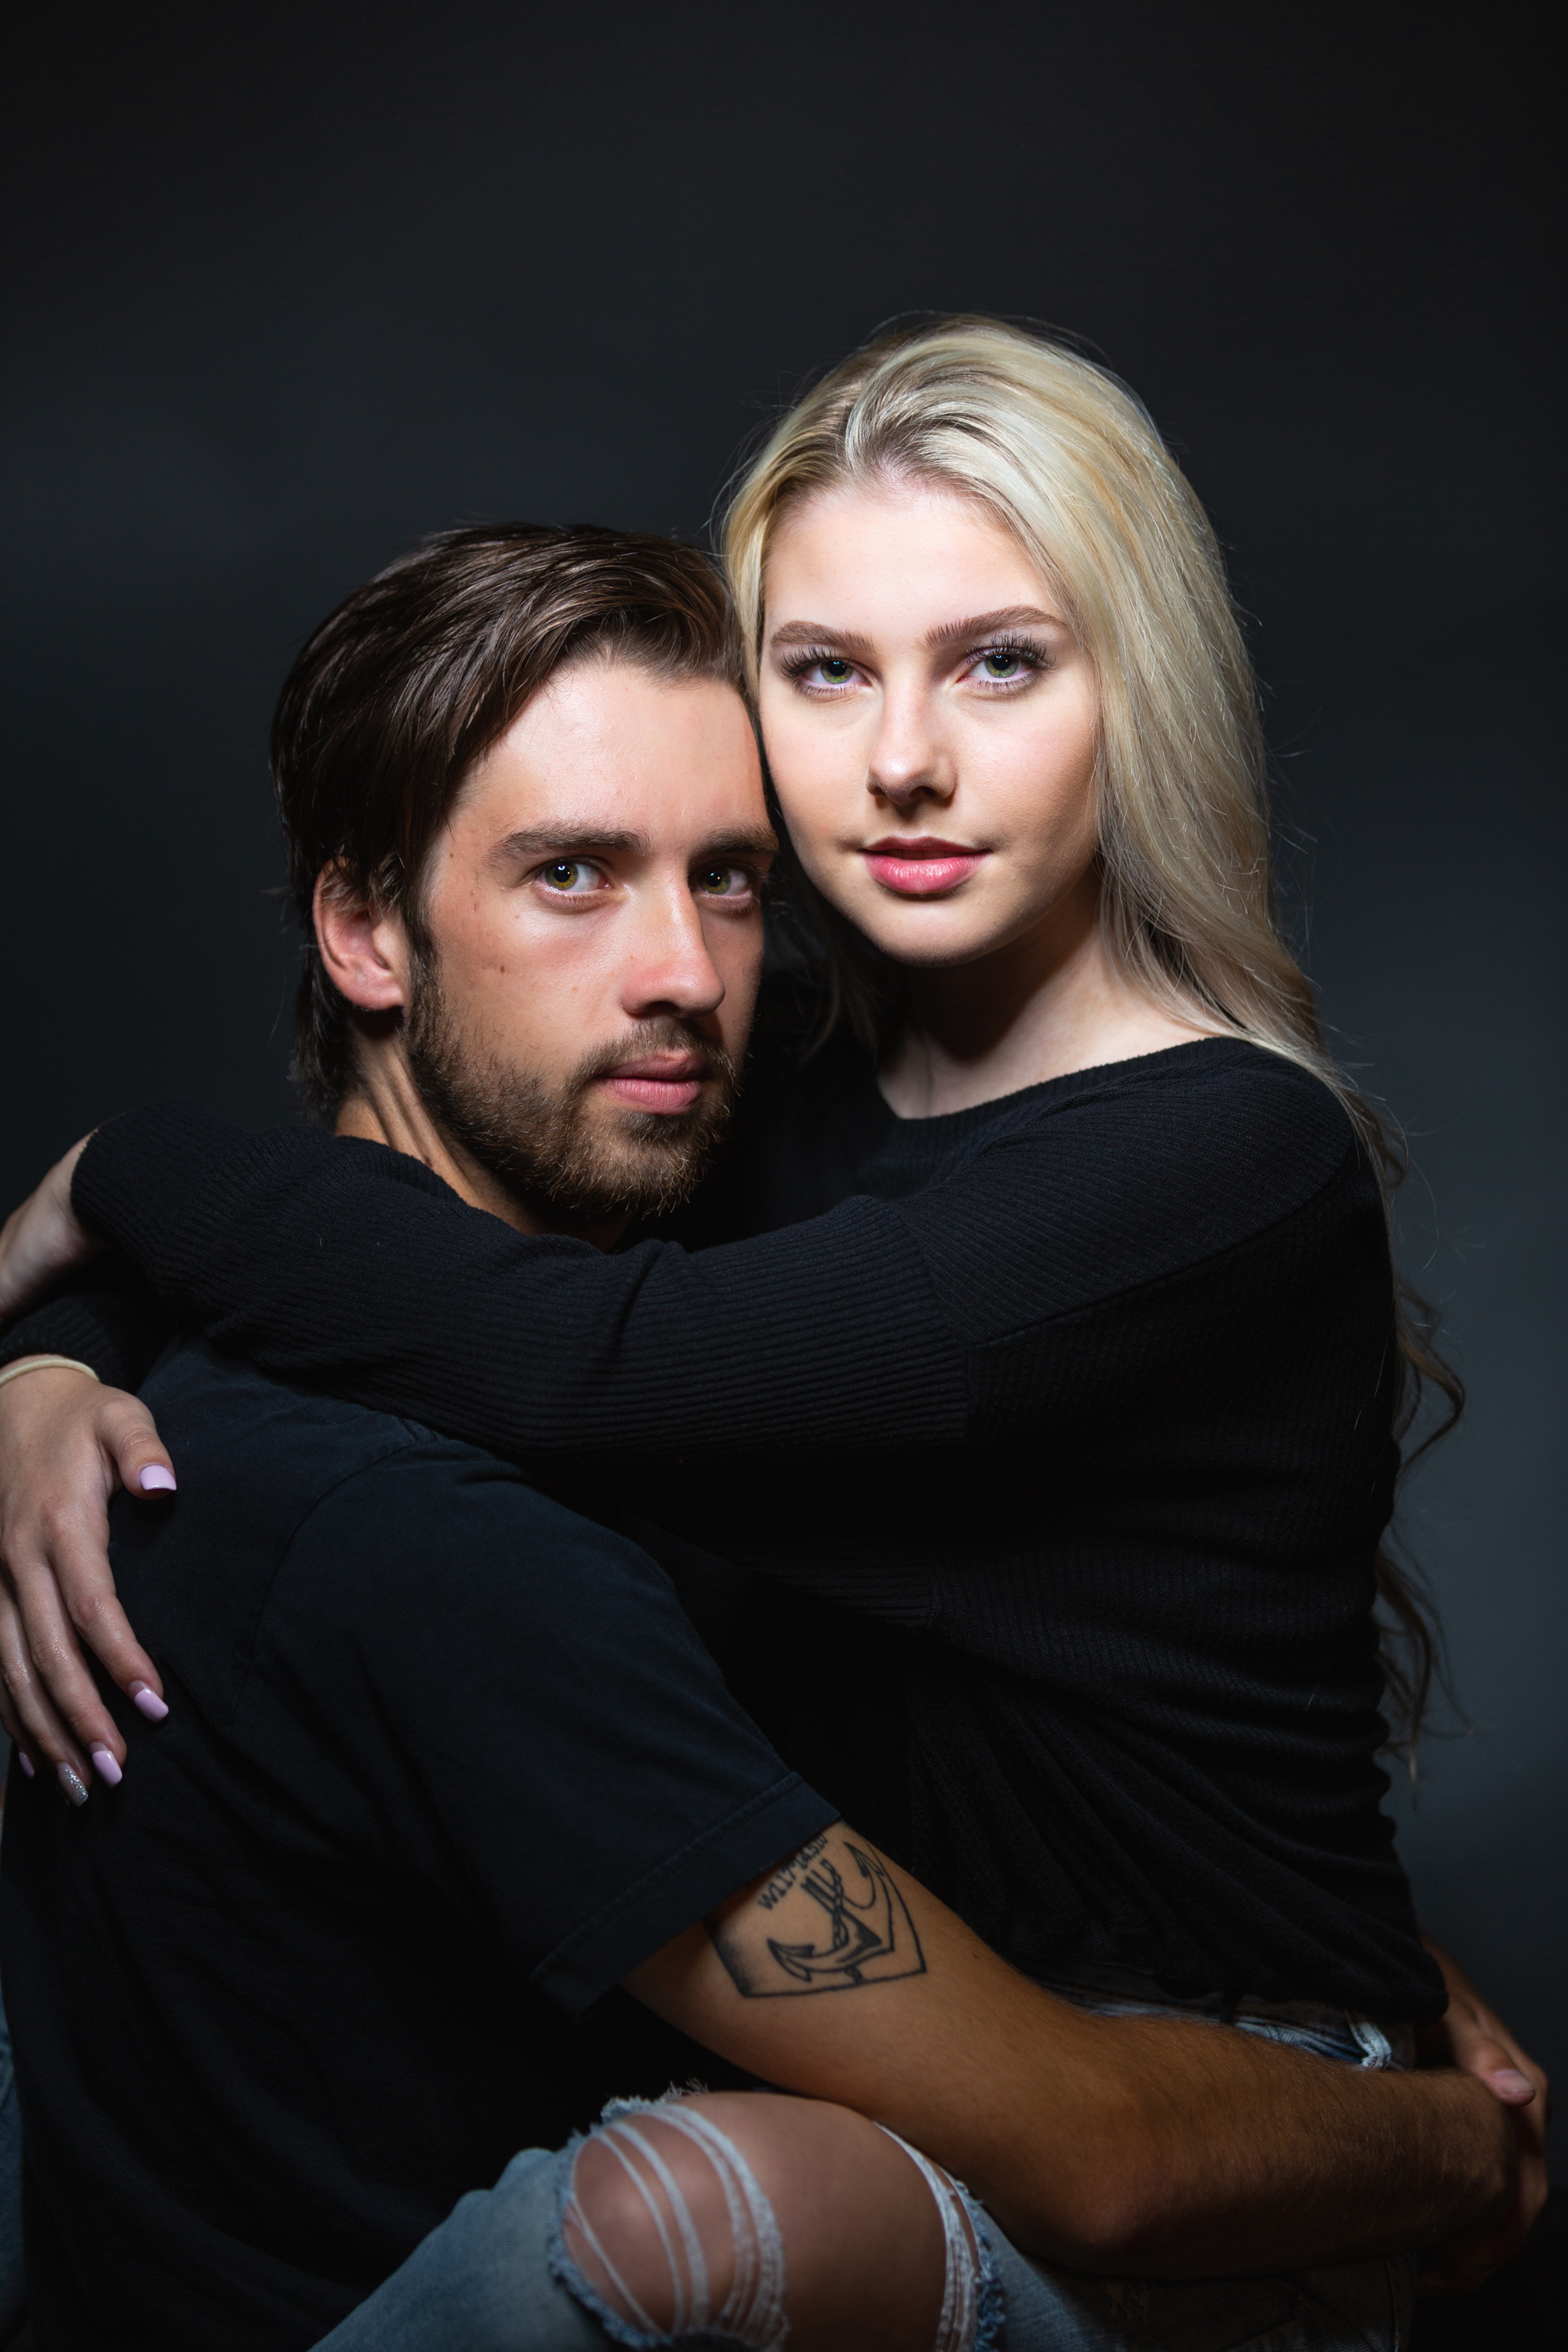 Couple's studio portrait photography